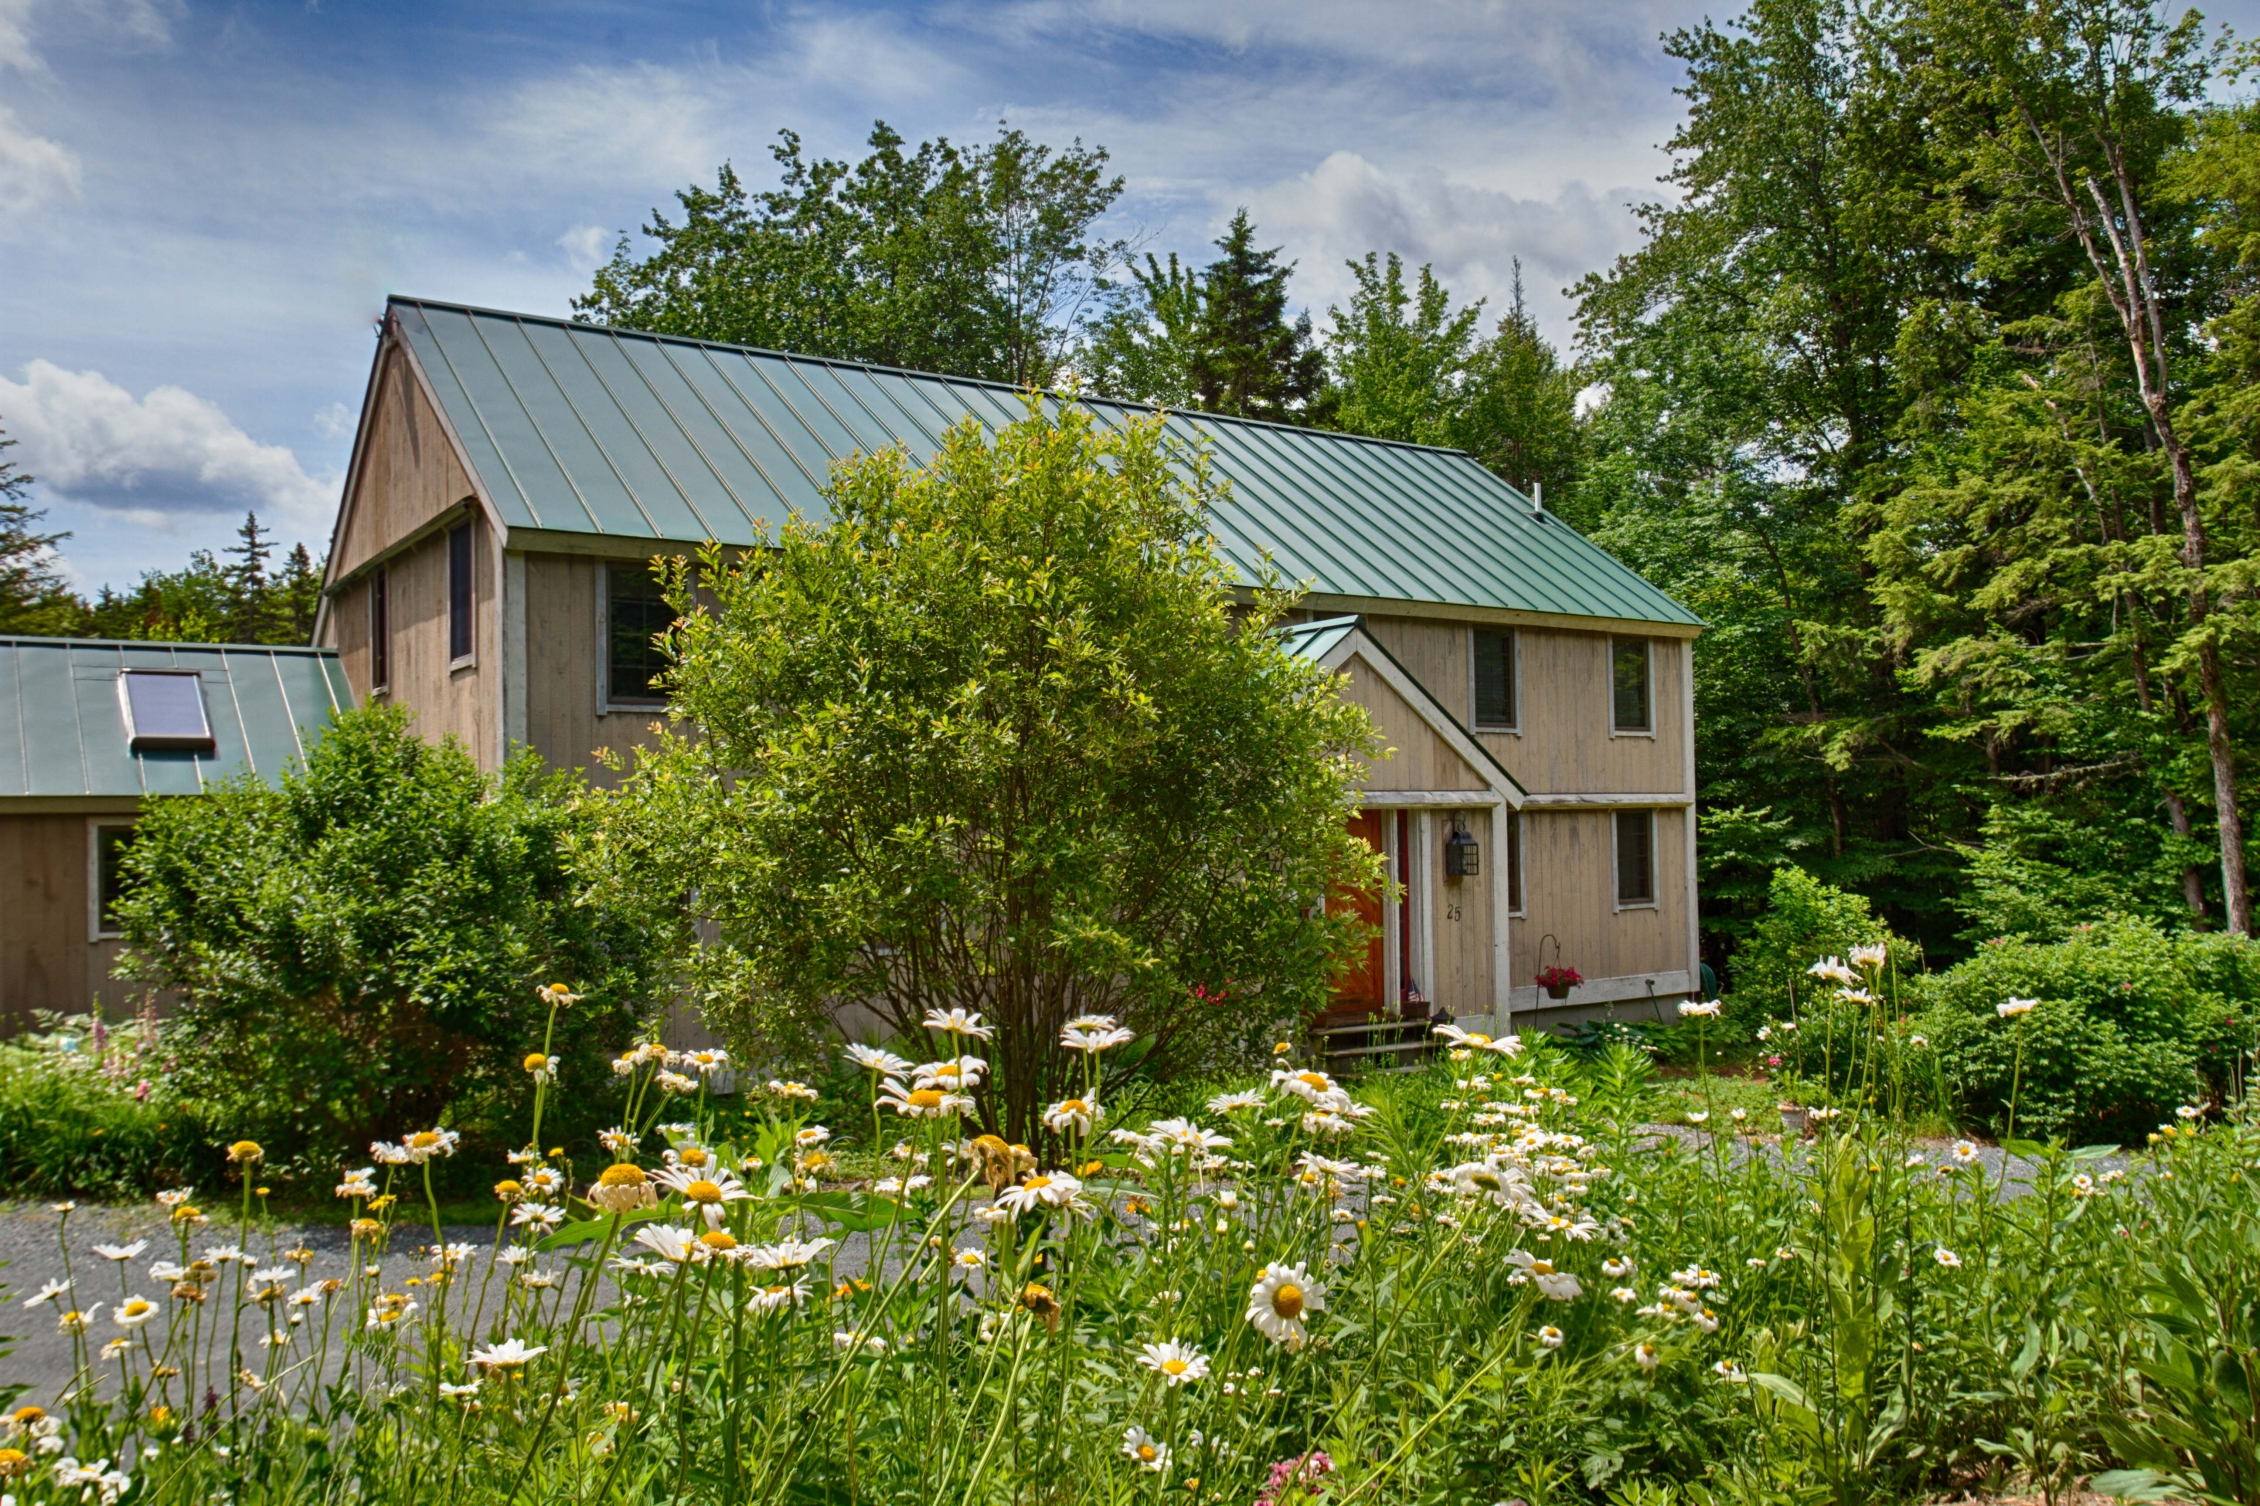 Single Family Home for Sale at 25 Catamount Rd., Grantham Grantham, New Hampshire 03753 United States